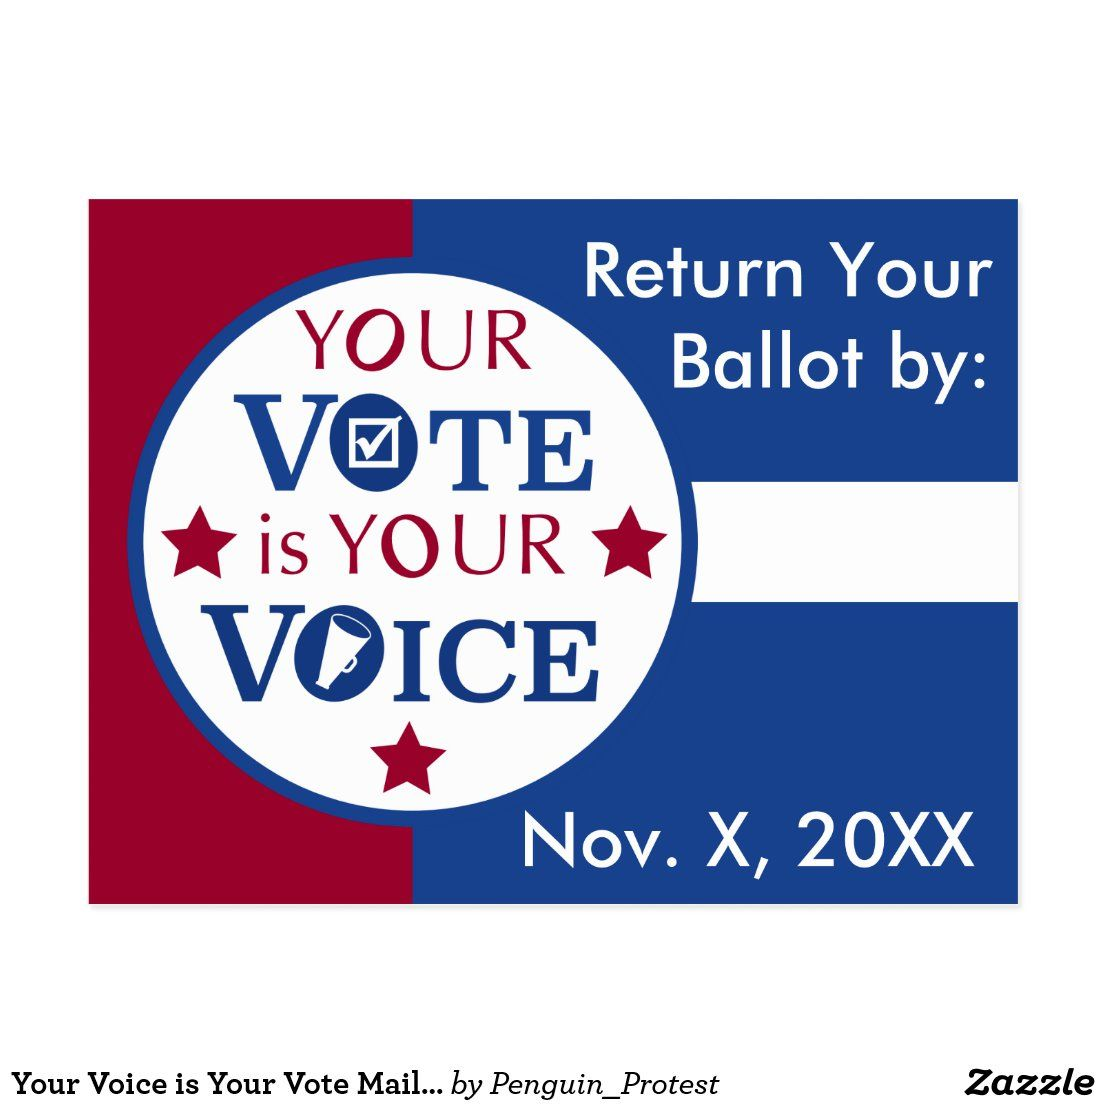 713438bfa9d1f8f85e984a5eb3733a36 - How Long Does It Take To Get A Mail In Ballot